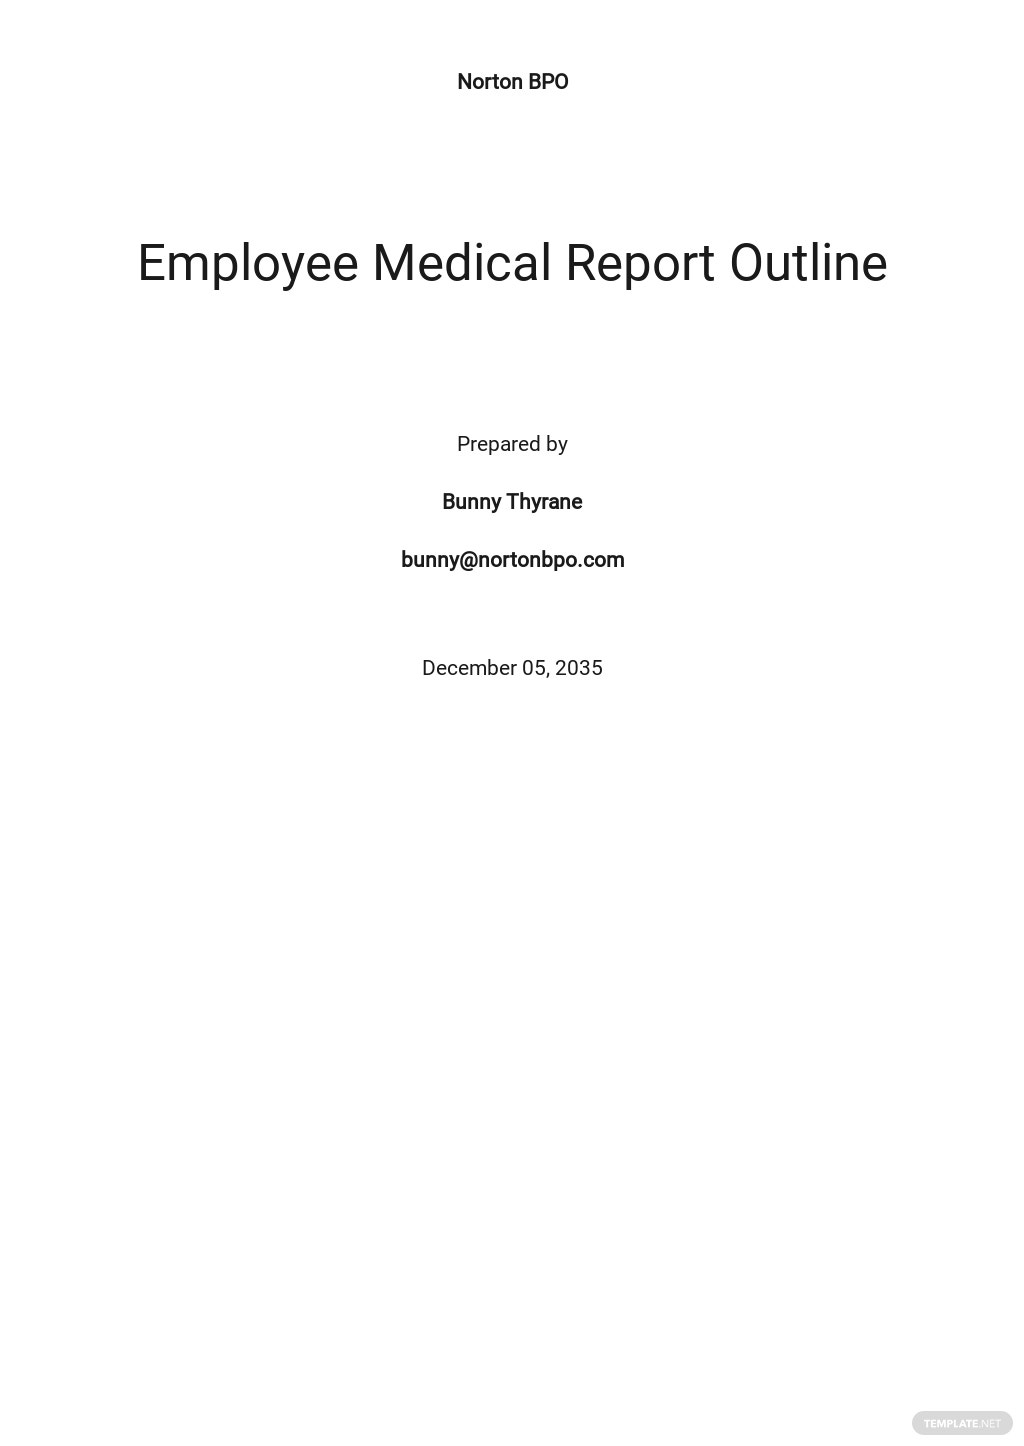 Report Outline Template.jpe